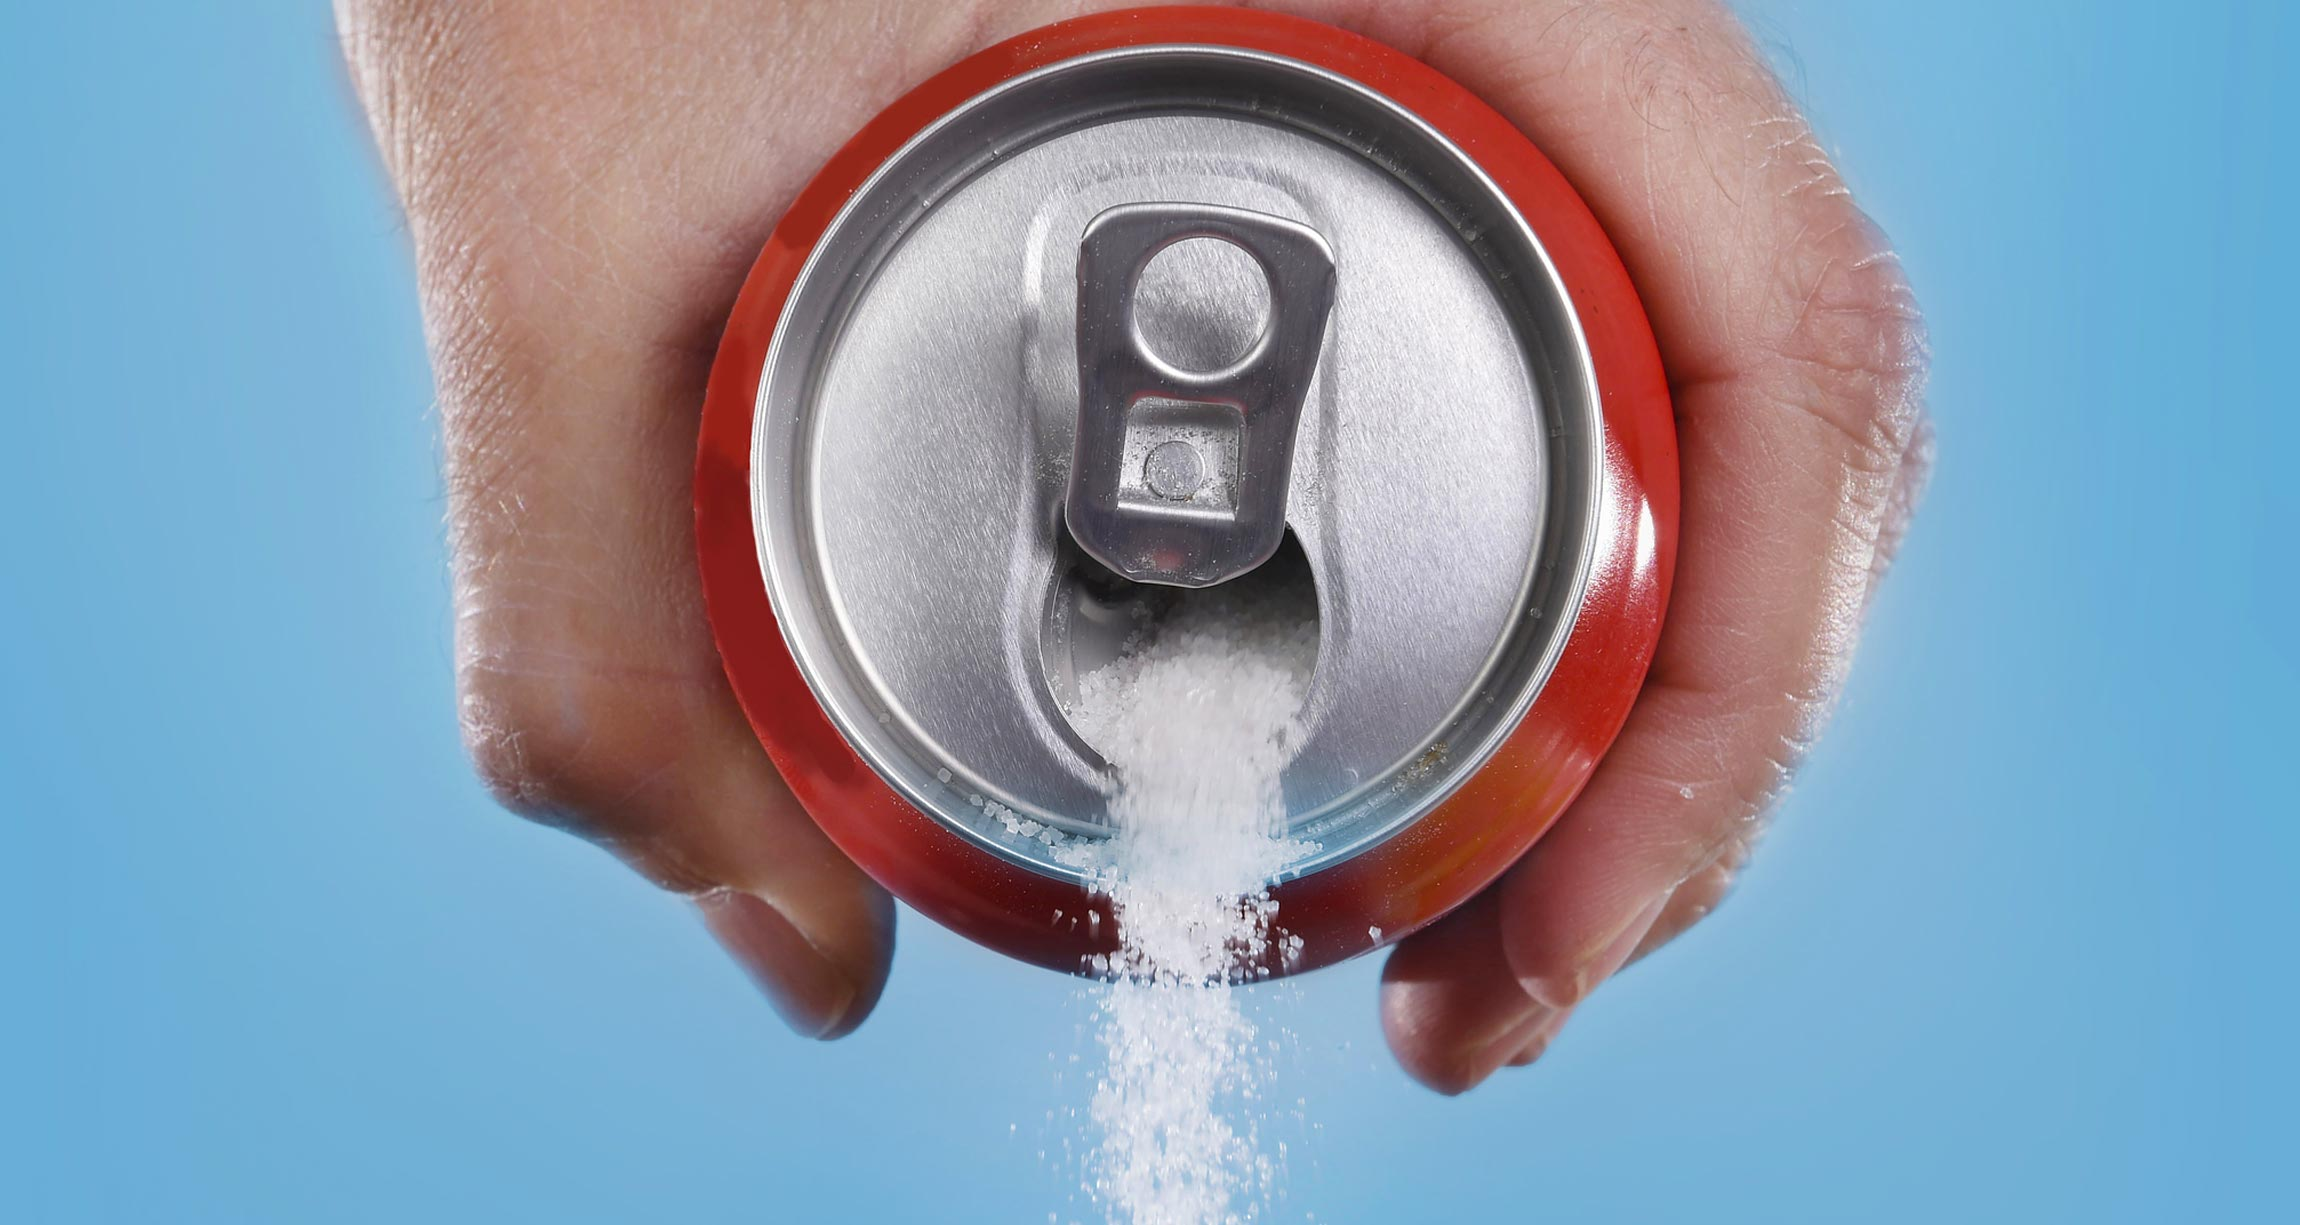 Soda Health Risks: 21 Ways Drinking Soda Is Bad for Your Health